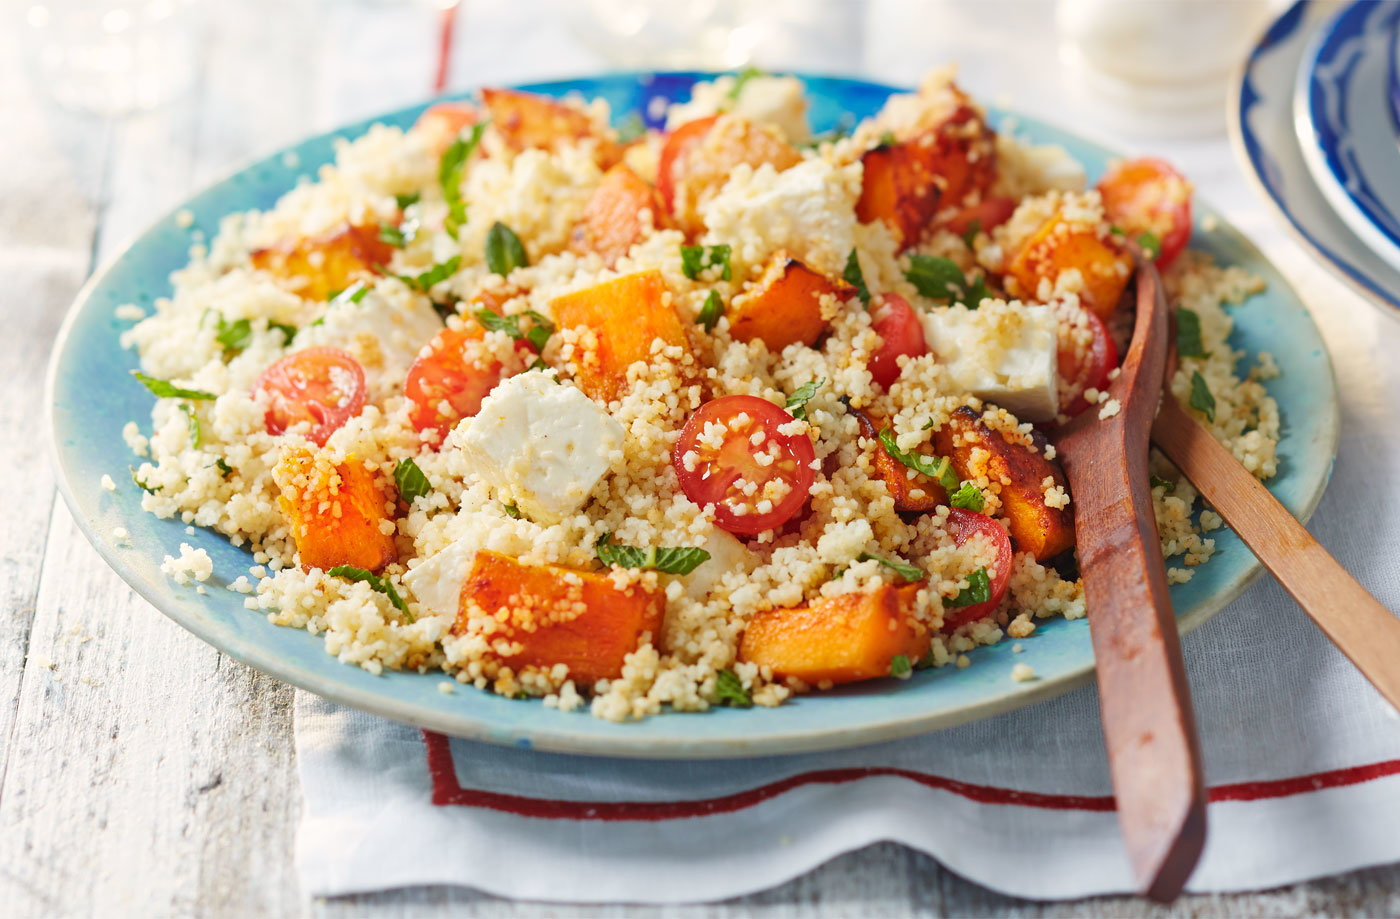 Piri piri squash, feta and couscous salad recipe